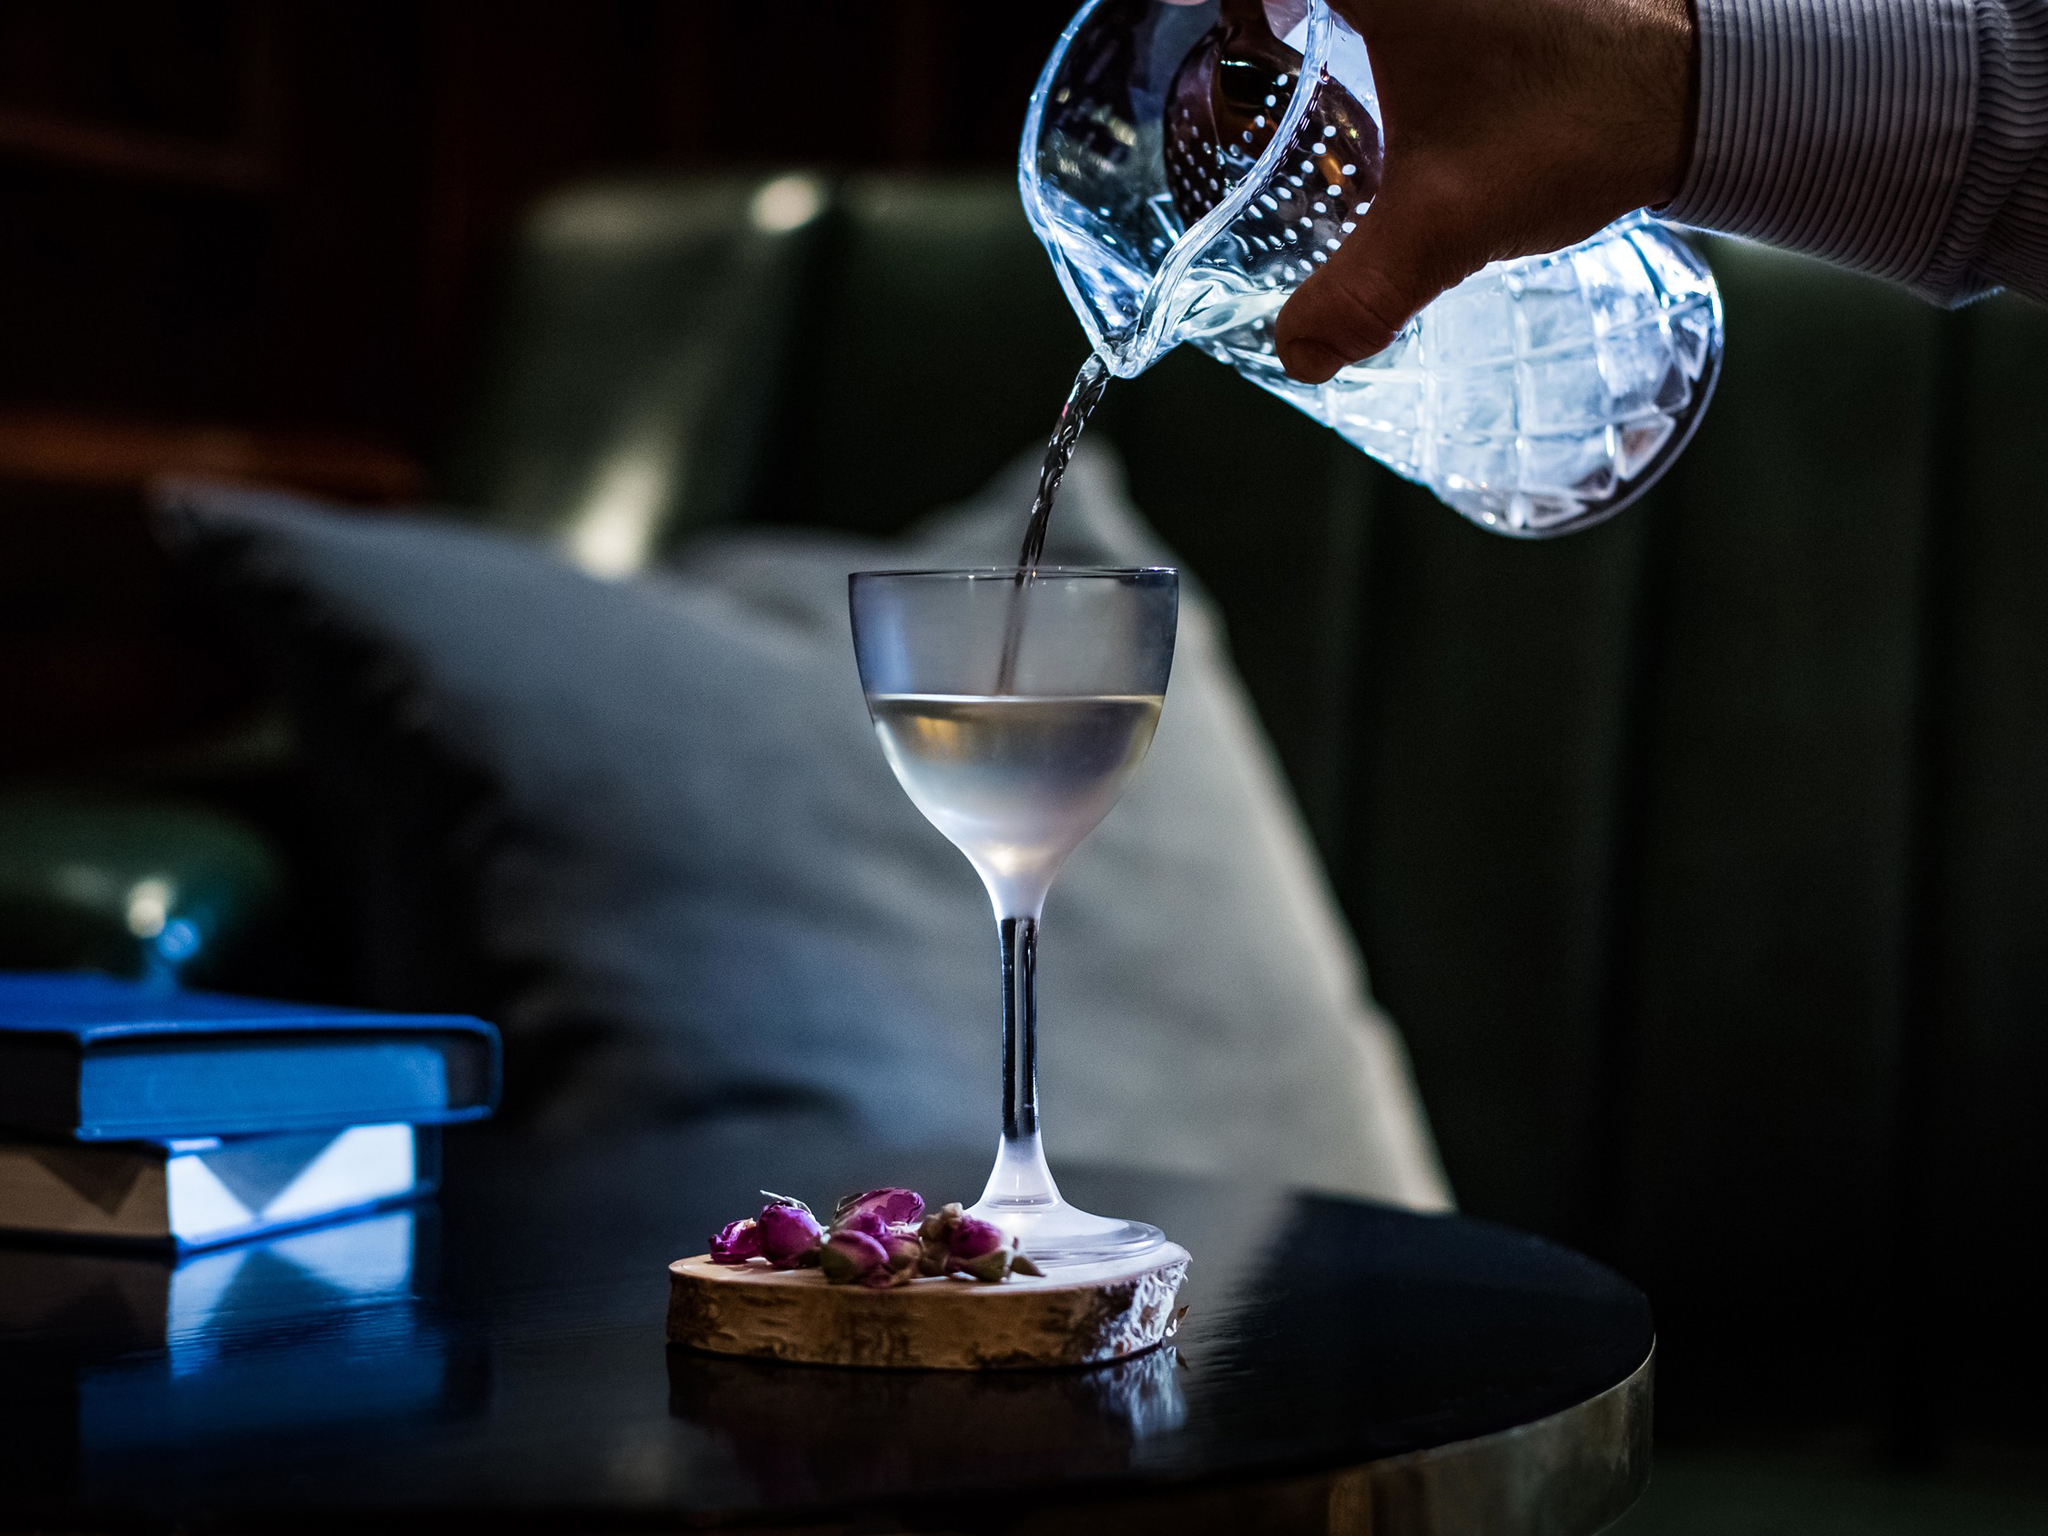 london's best cocktail bars, bloomsbury club bar